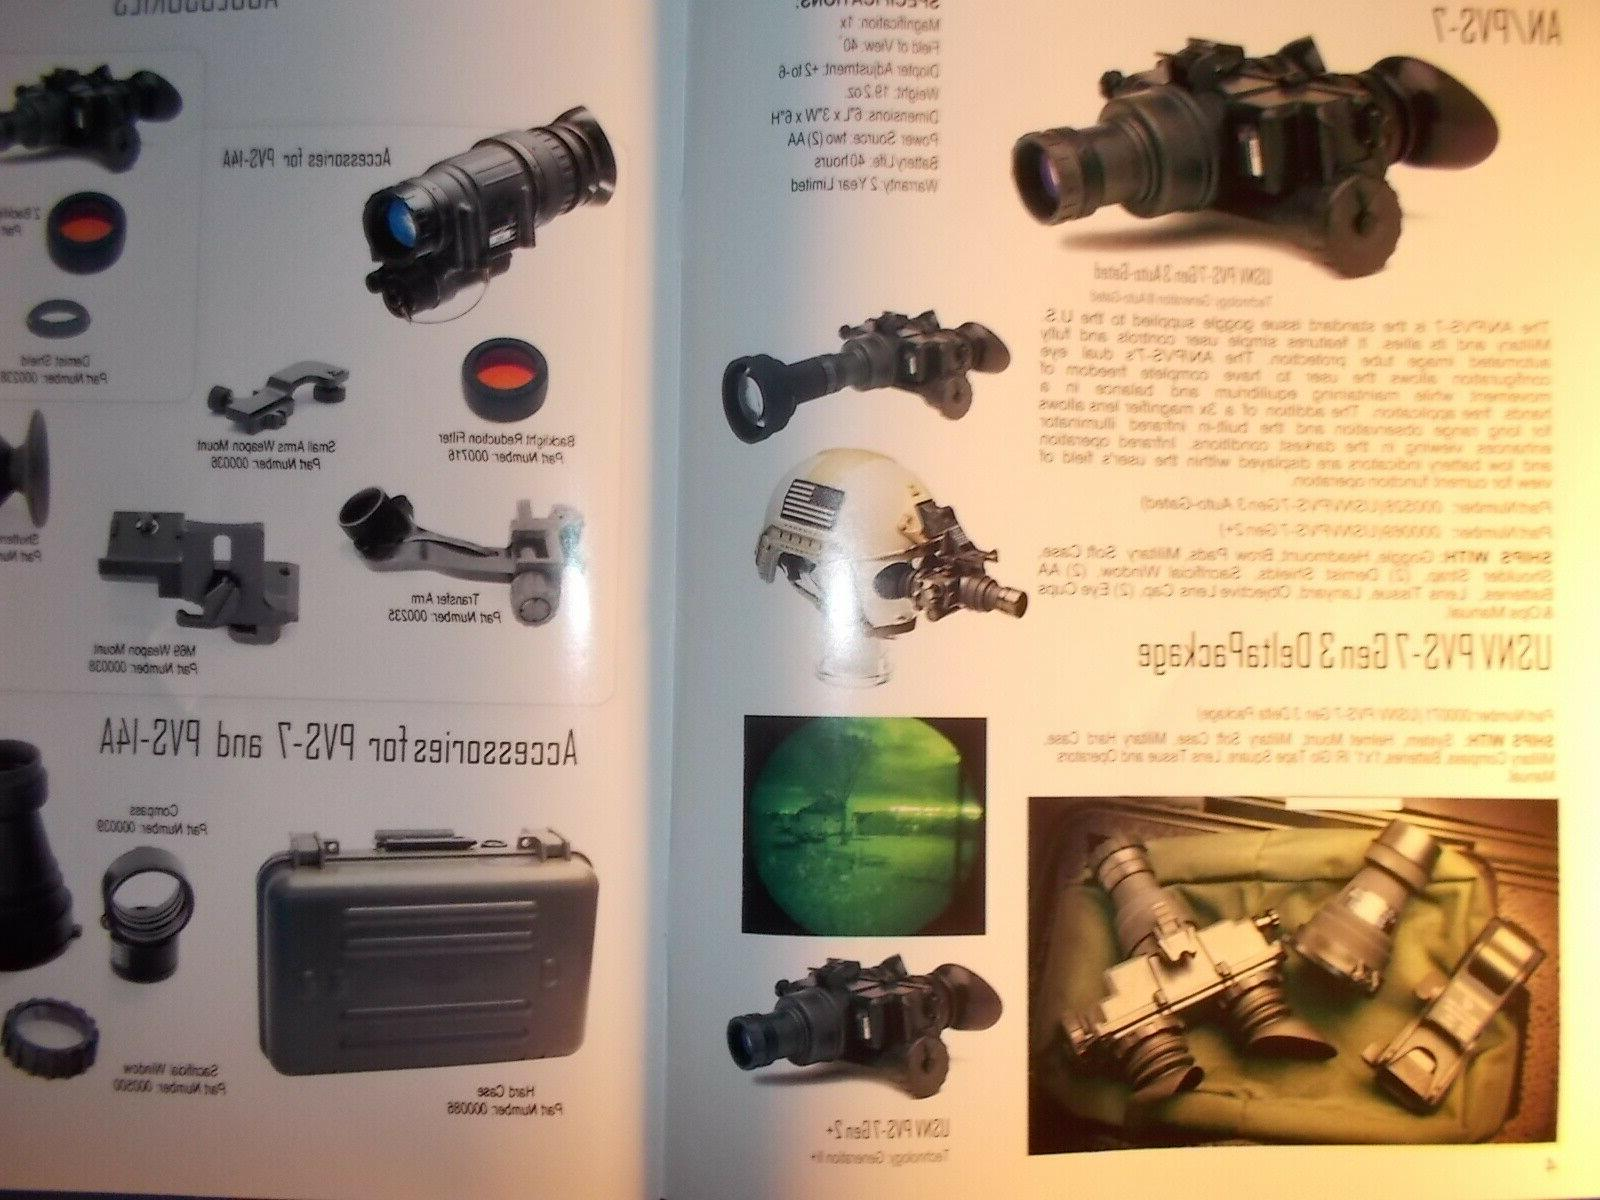 US NIGHT Catalog CUSTOM-SPORTING PRODUCTS LOOK! Made in USA